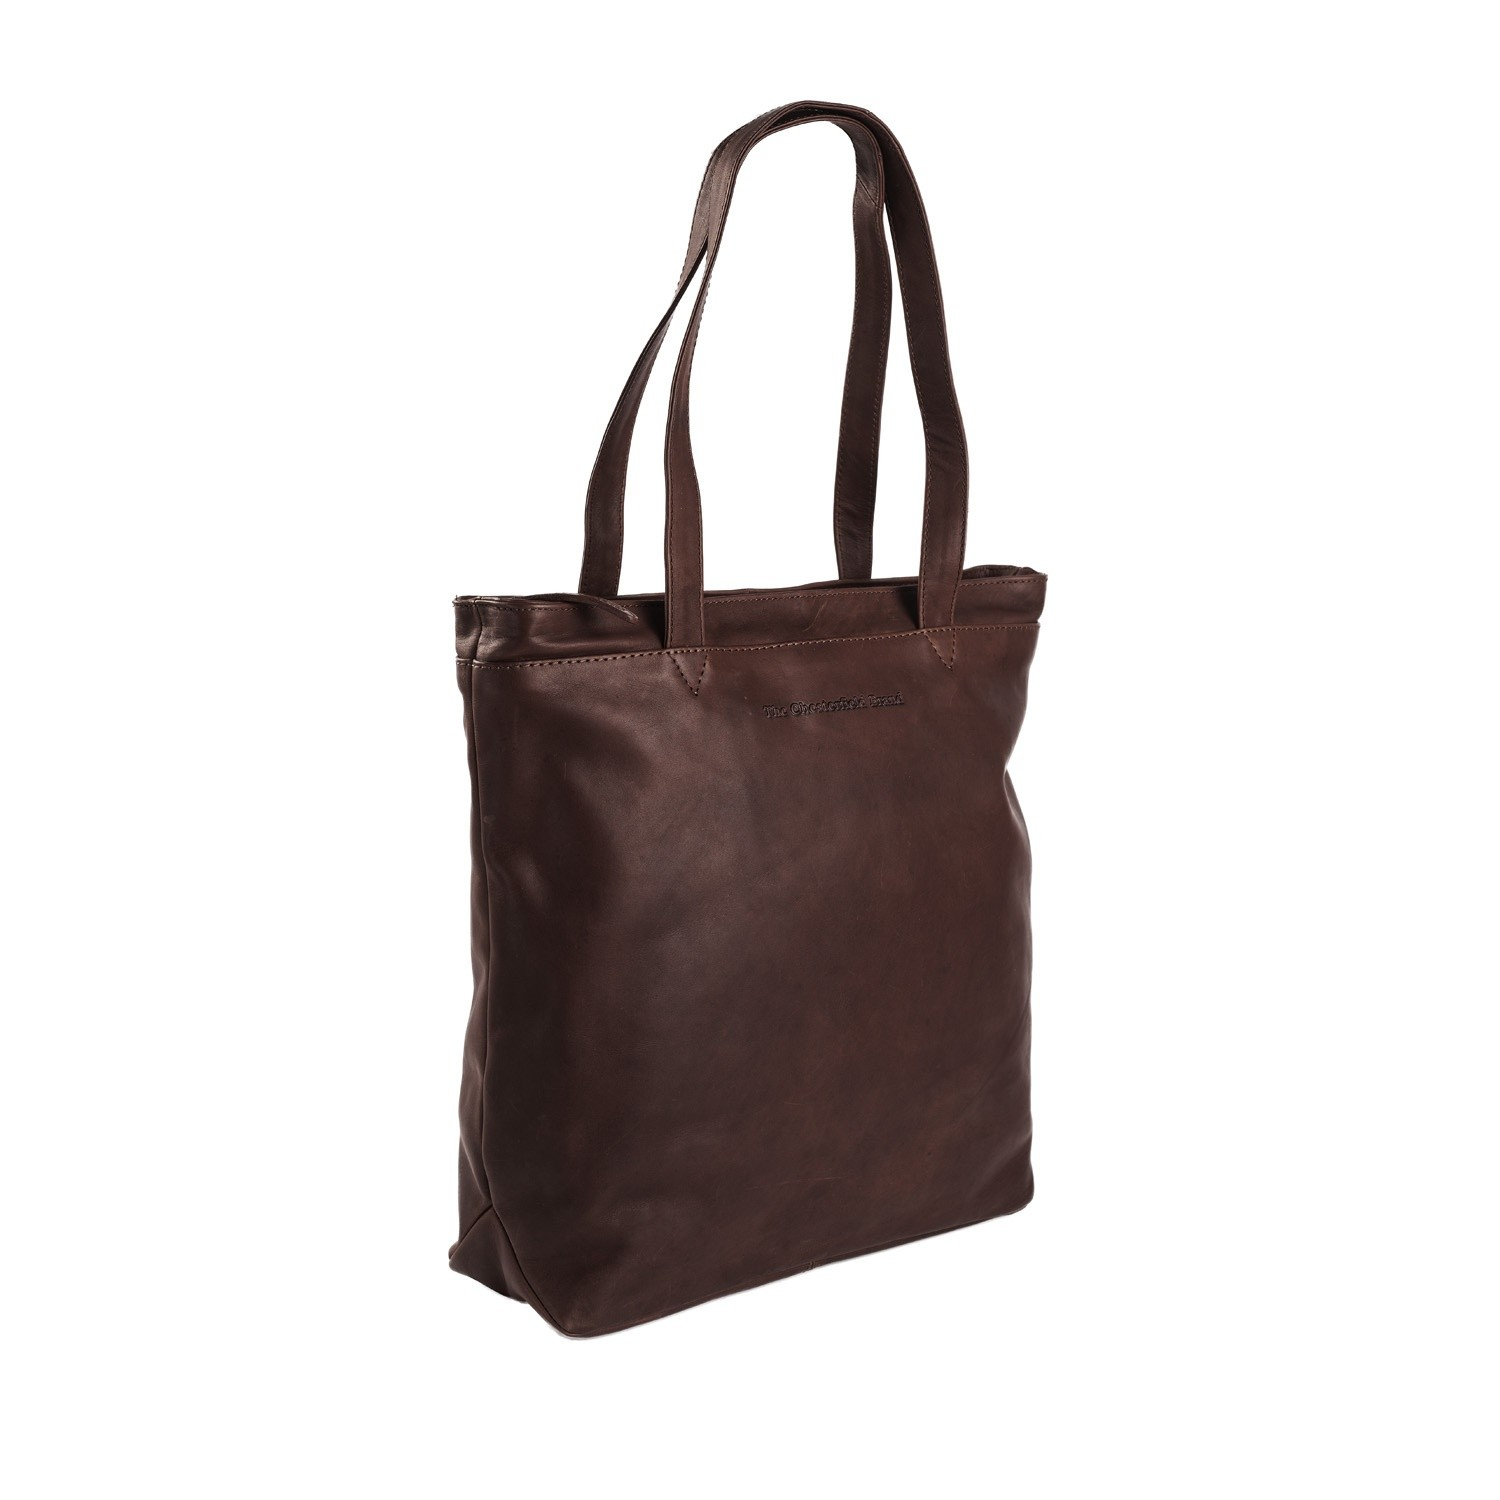 Bilde av Chesterfield Leather Shopper Brown Bonn